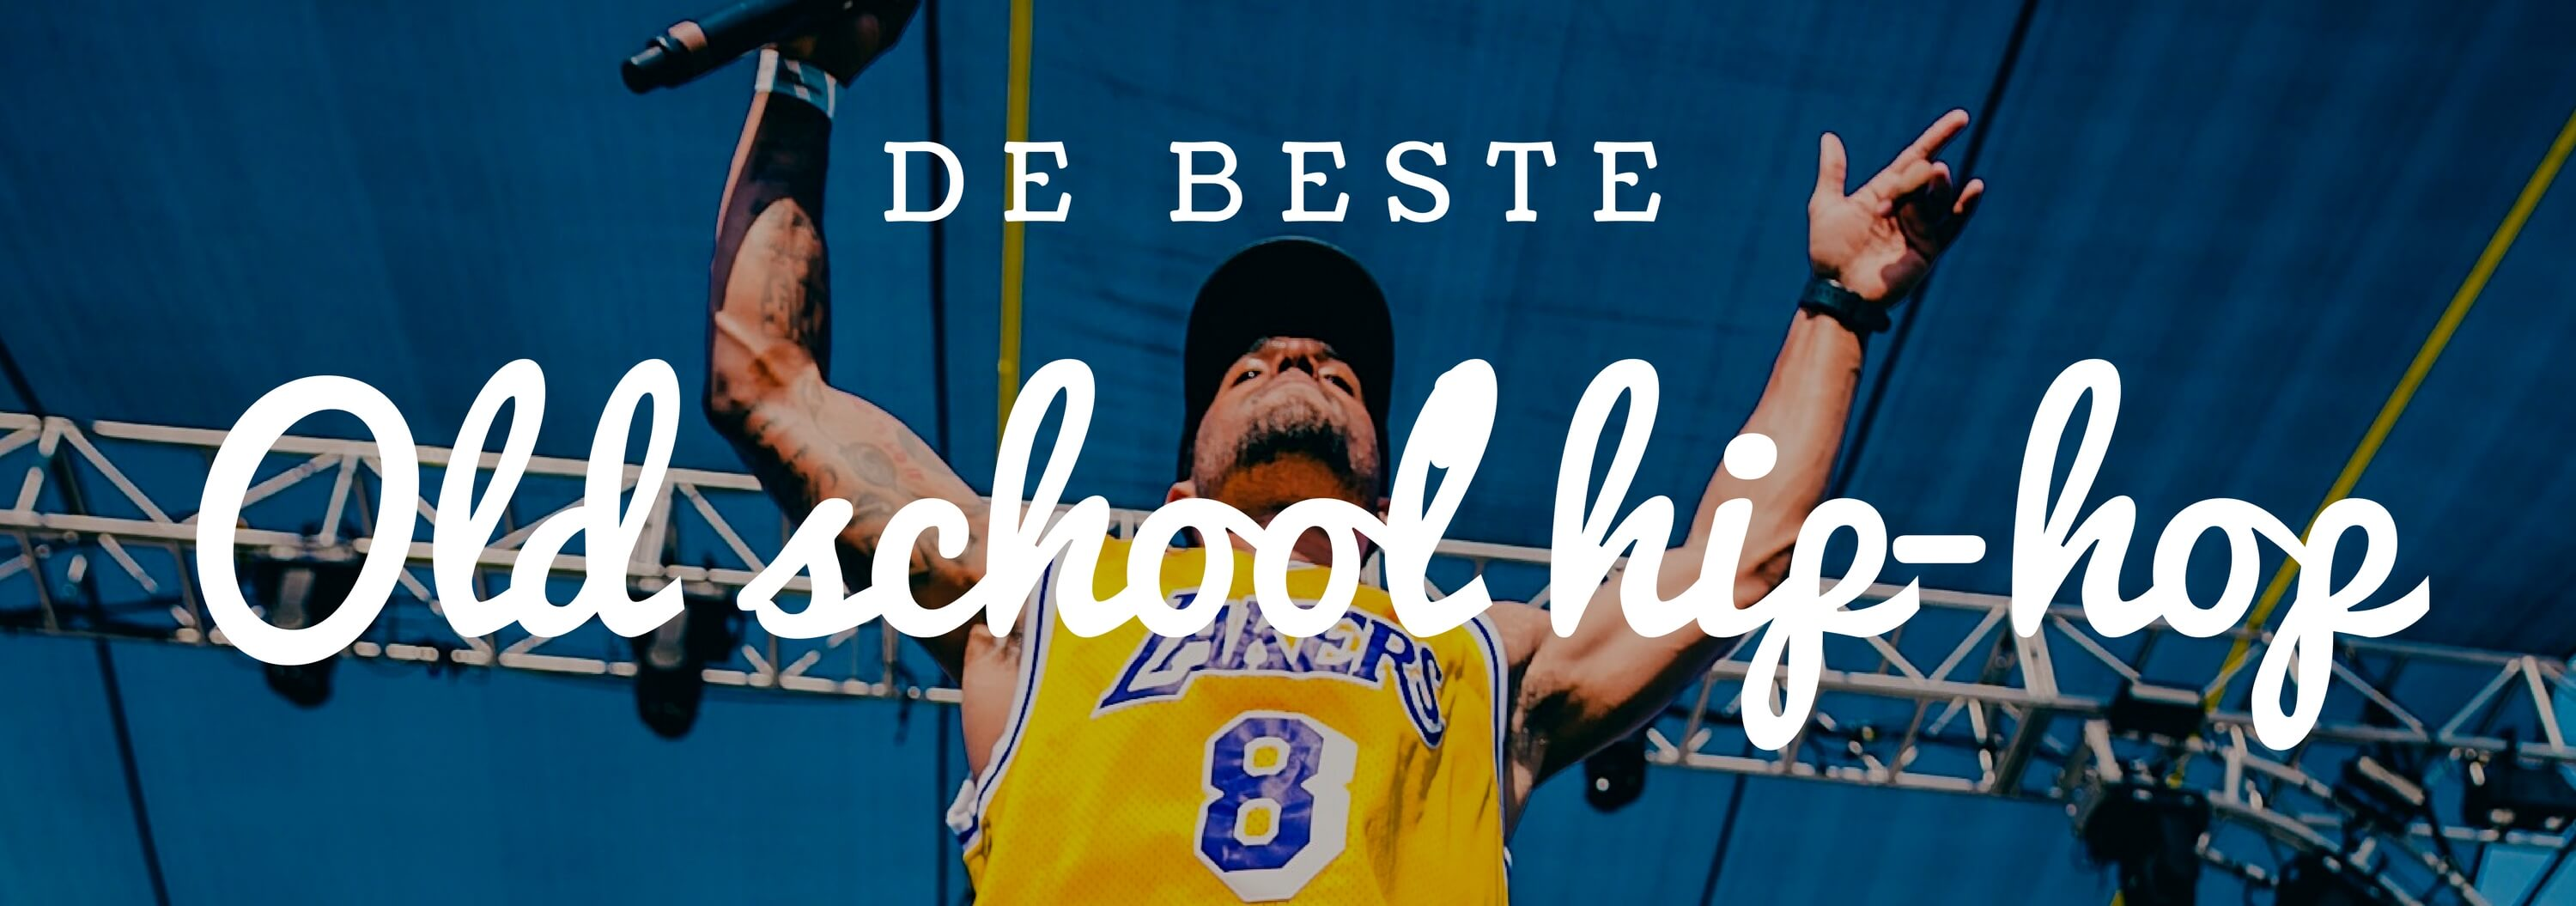 De beste old school hip-hop blog